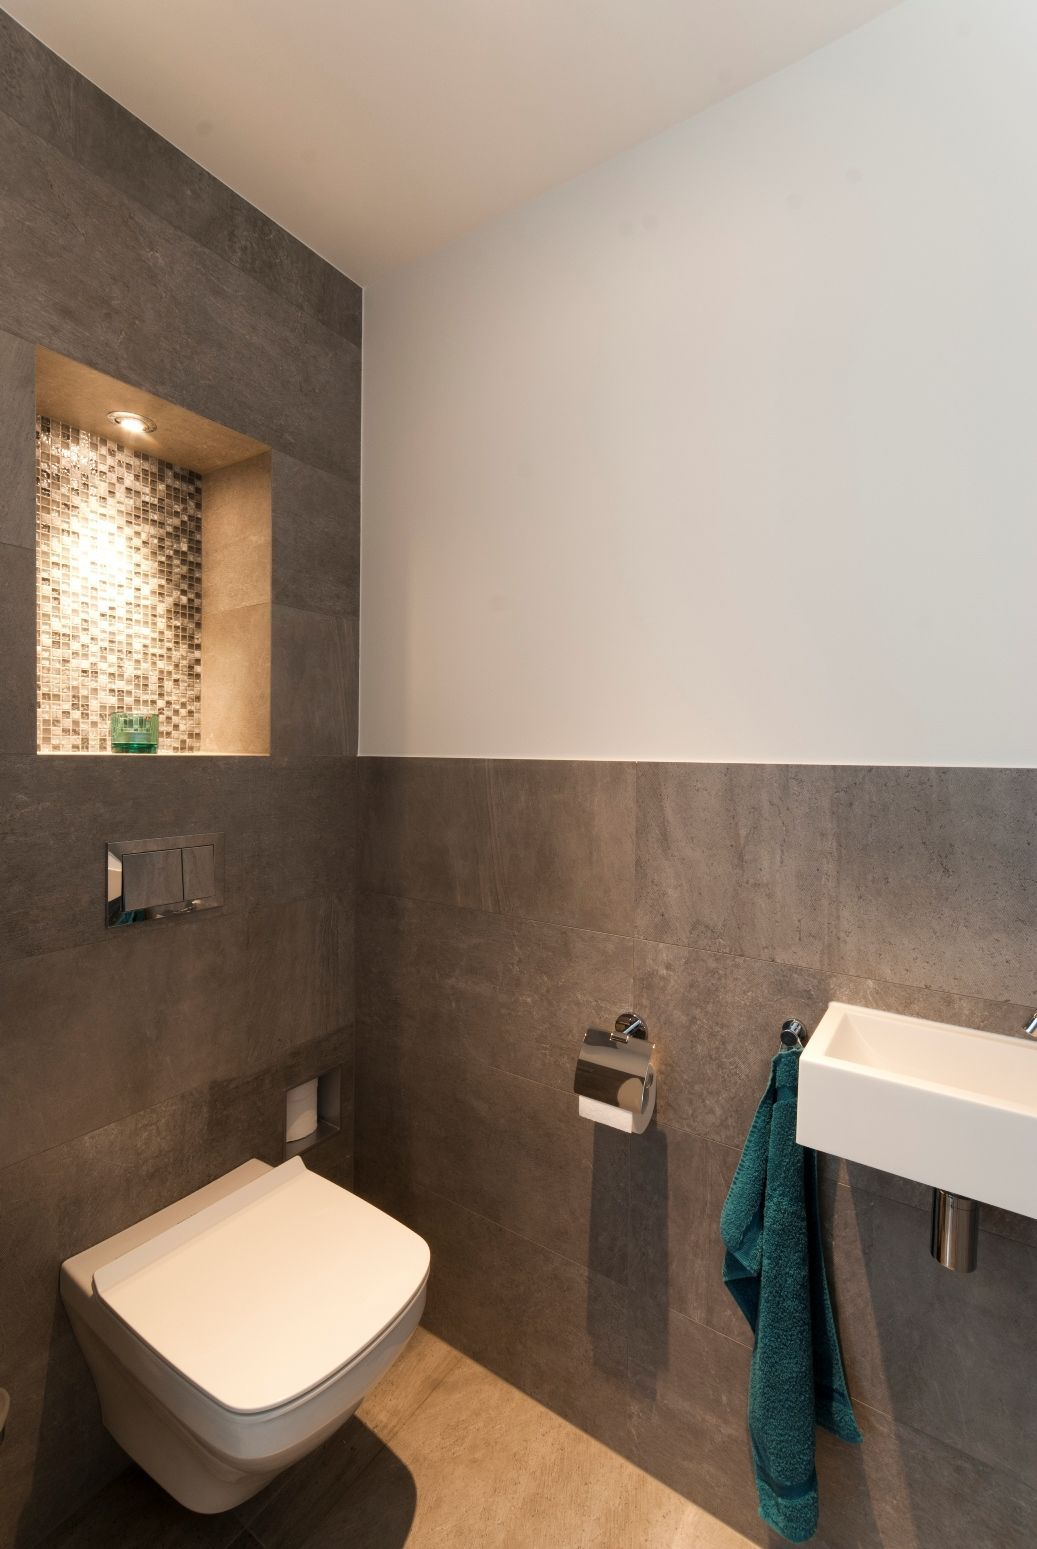 A Comprehensive Overview On Home Decoration In 2020 Kleines Wc Zimmer Toiletten Moderne Toilette